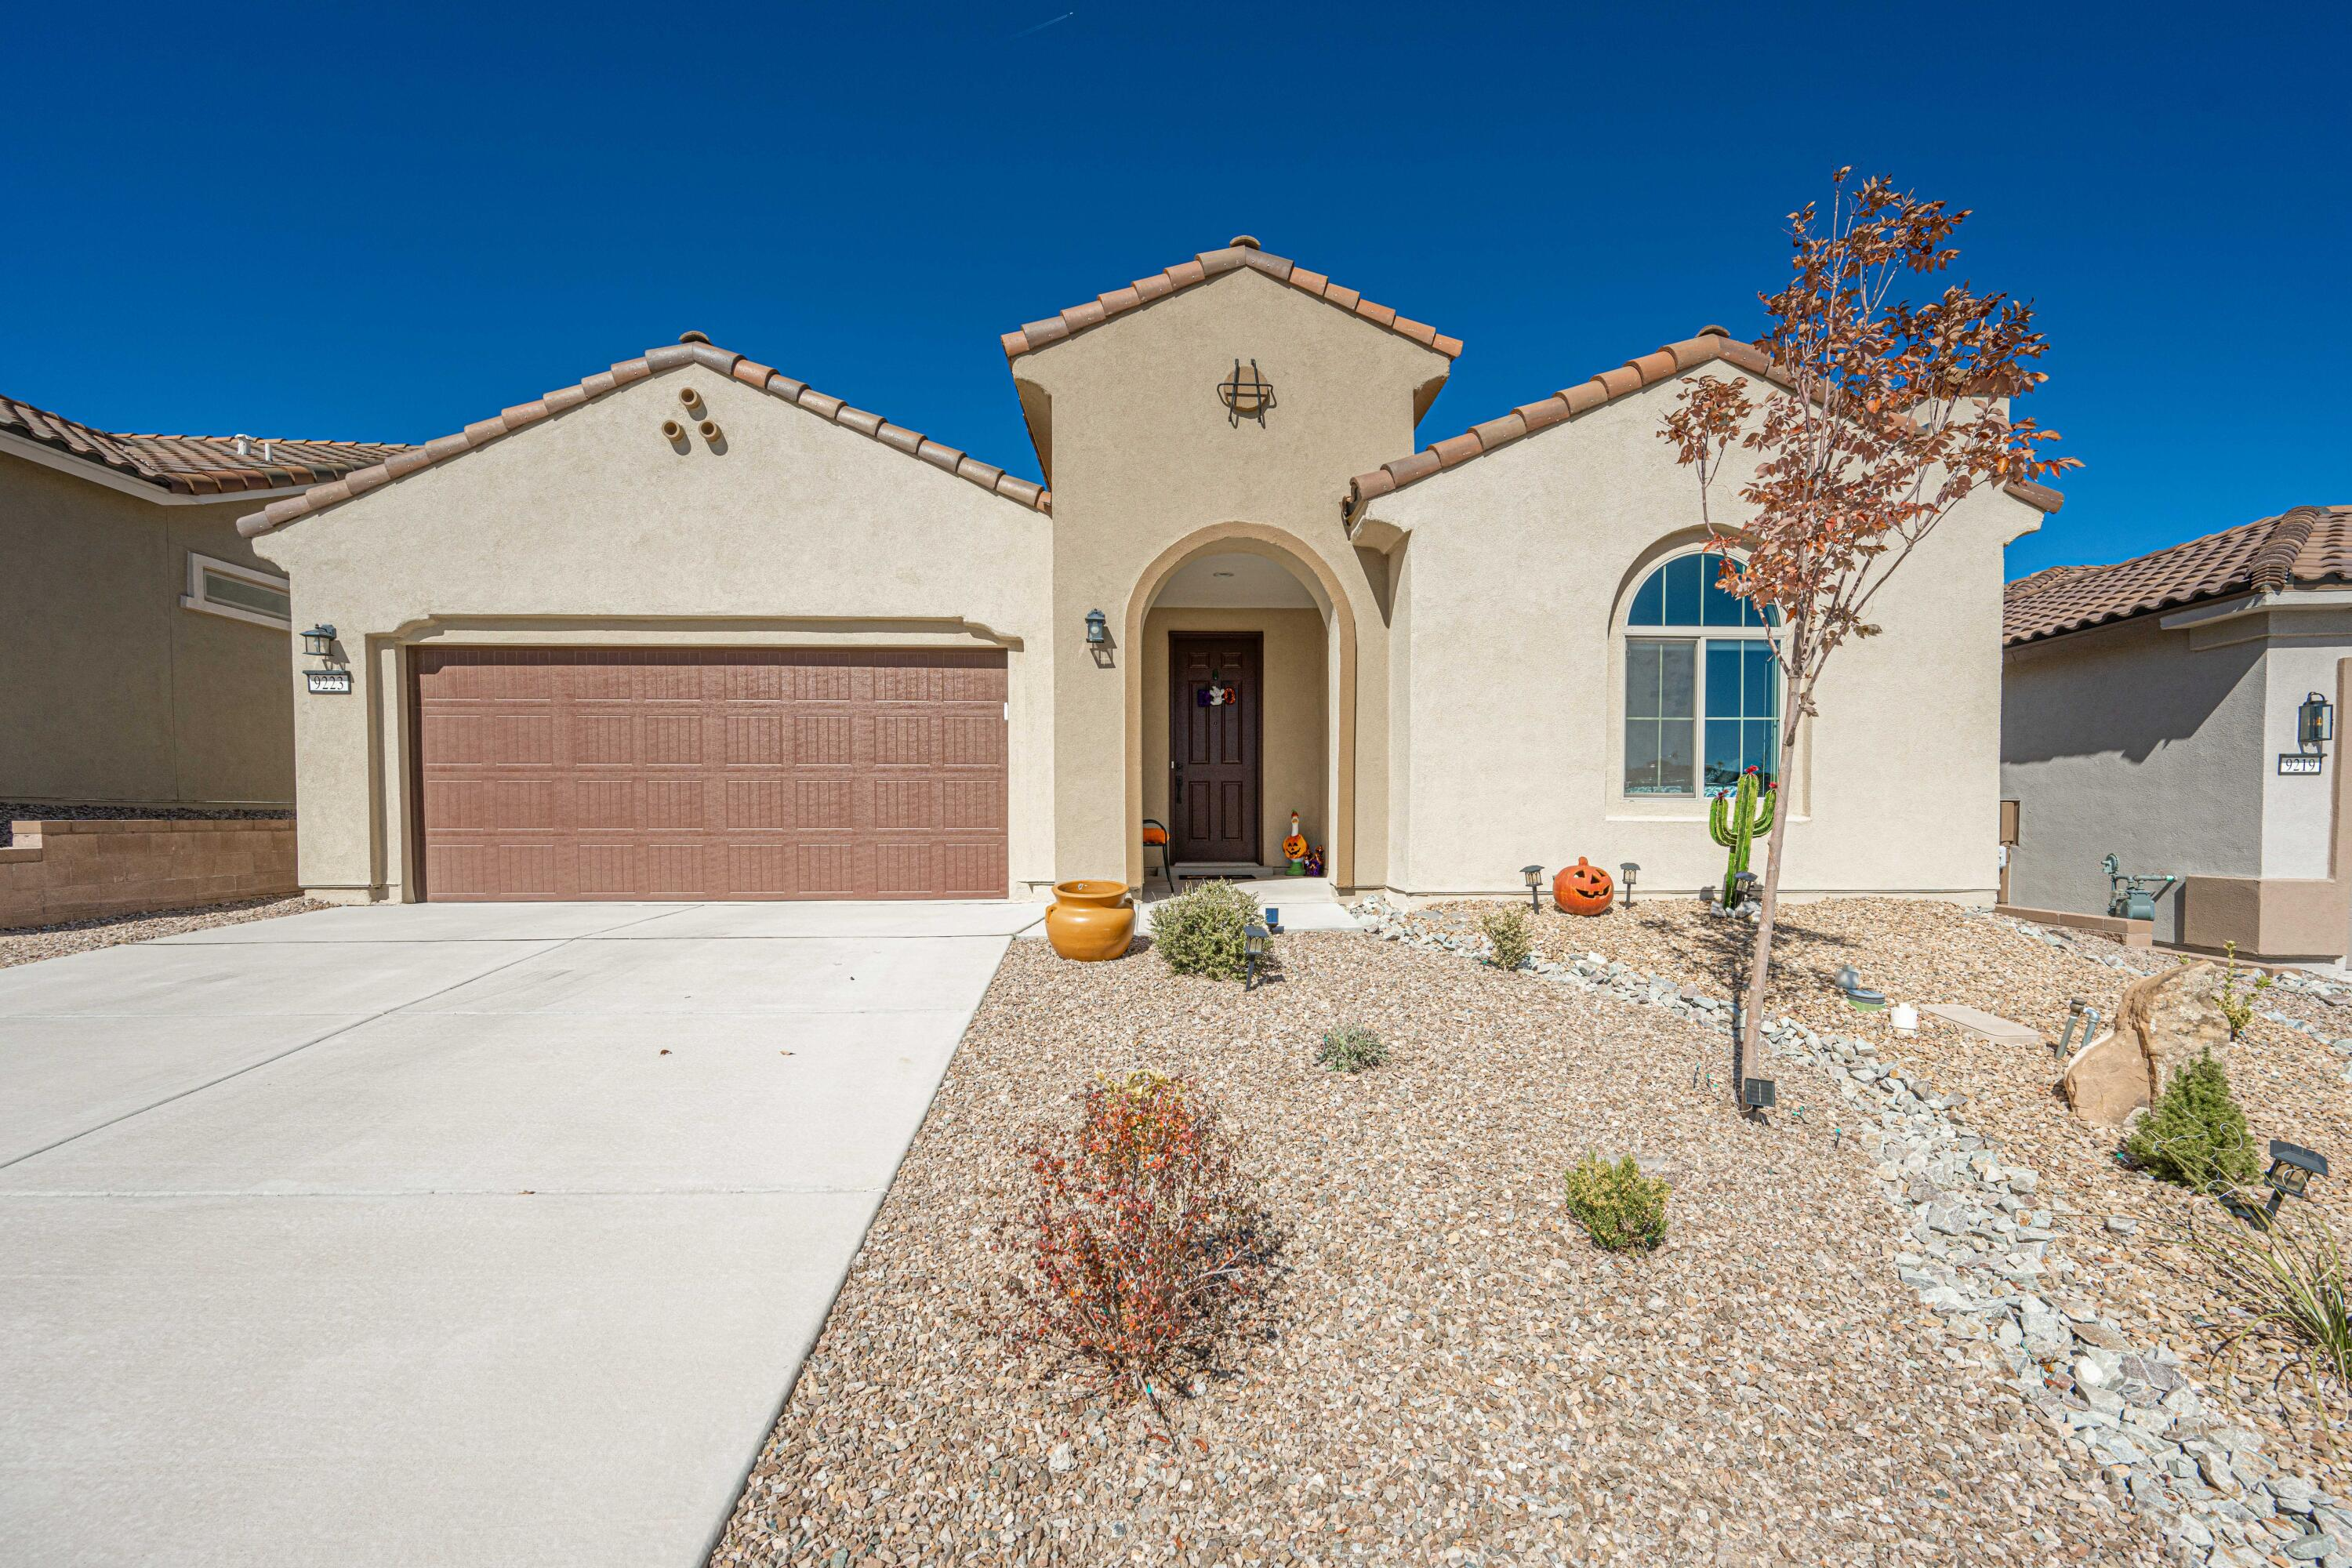 Welcome to Del Webb Mirehaven, a 55+ Active Adult Community!  This 'Preserve' floor-plan offers approx 2035SF, 3BR's, 2 Baths, beautiful Luxury SPC Vinyl Plank Flooring. Large Master Suite with walk-in shower w/bench and stone floor & tile surround, also Large Walk In Closet!  Kitchen has gorgeous Winfield White Icing Cabinetry, Quartz Counter-tops and nice tile back-splash, large island, huge pantry & SS Appliances.  Enjoy the nice view of the mountains and city from the custom landscaped backyard! REF AIR! Tank-less WH w/timer! Garage has additional storage space too! The Amenity Center has upscale GYM, Saltwater outdoor pool, Tennis Courts, Pickle ball Courts, Daily Activities, Cafe and so much More. Walking Trails to the Petroglyphs!  Minutes to Downtown ABQ, Airport and all amenities!